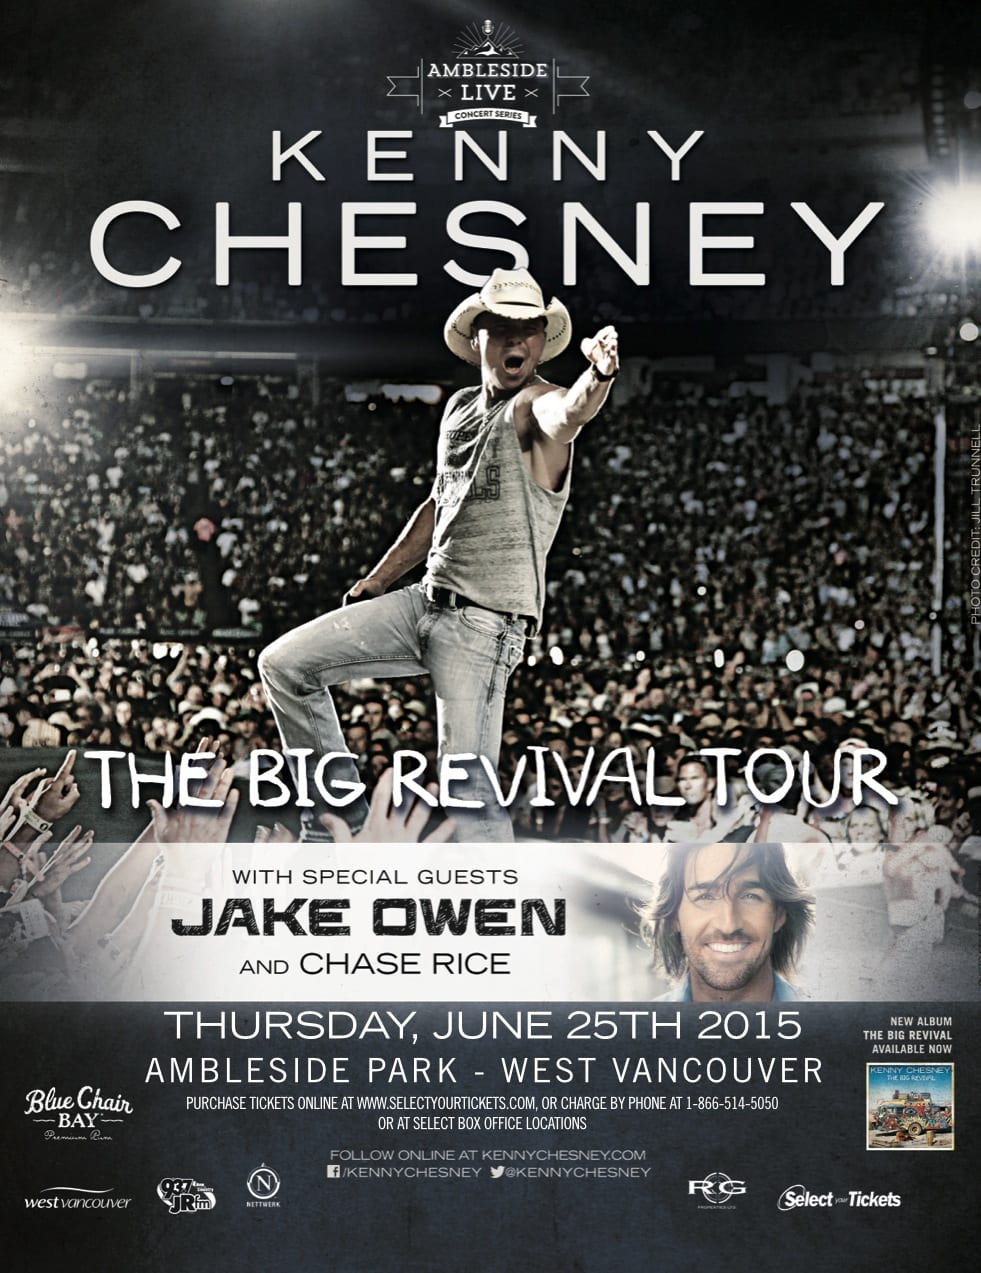 Kenny Chesney – The Big Revival Tour at Ambleside Park West Vancouver